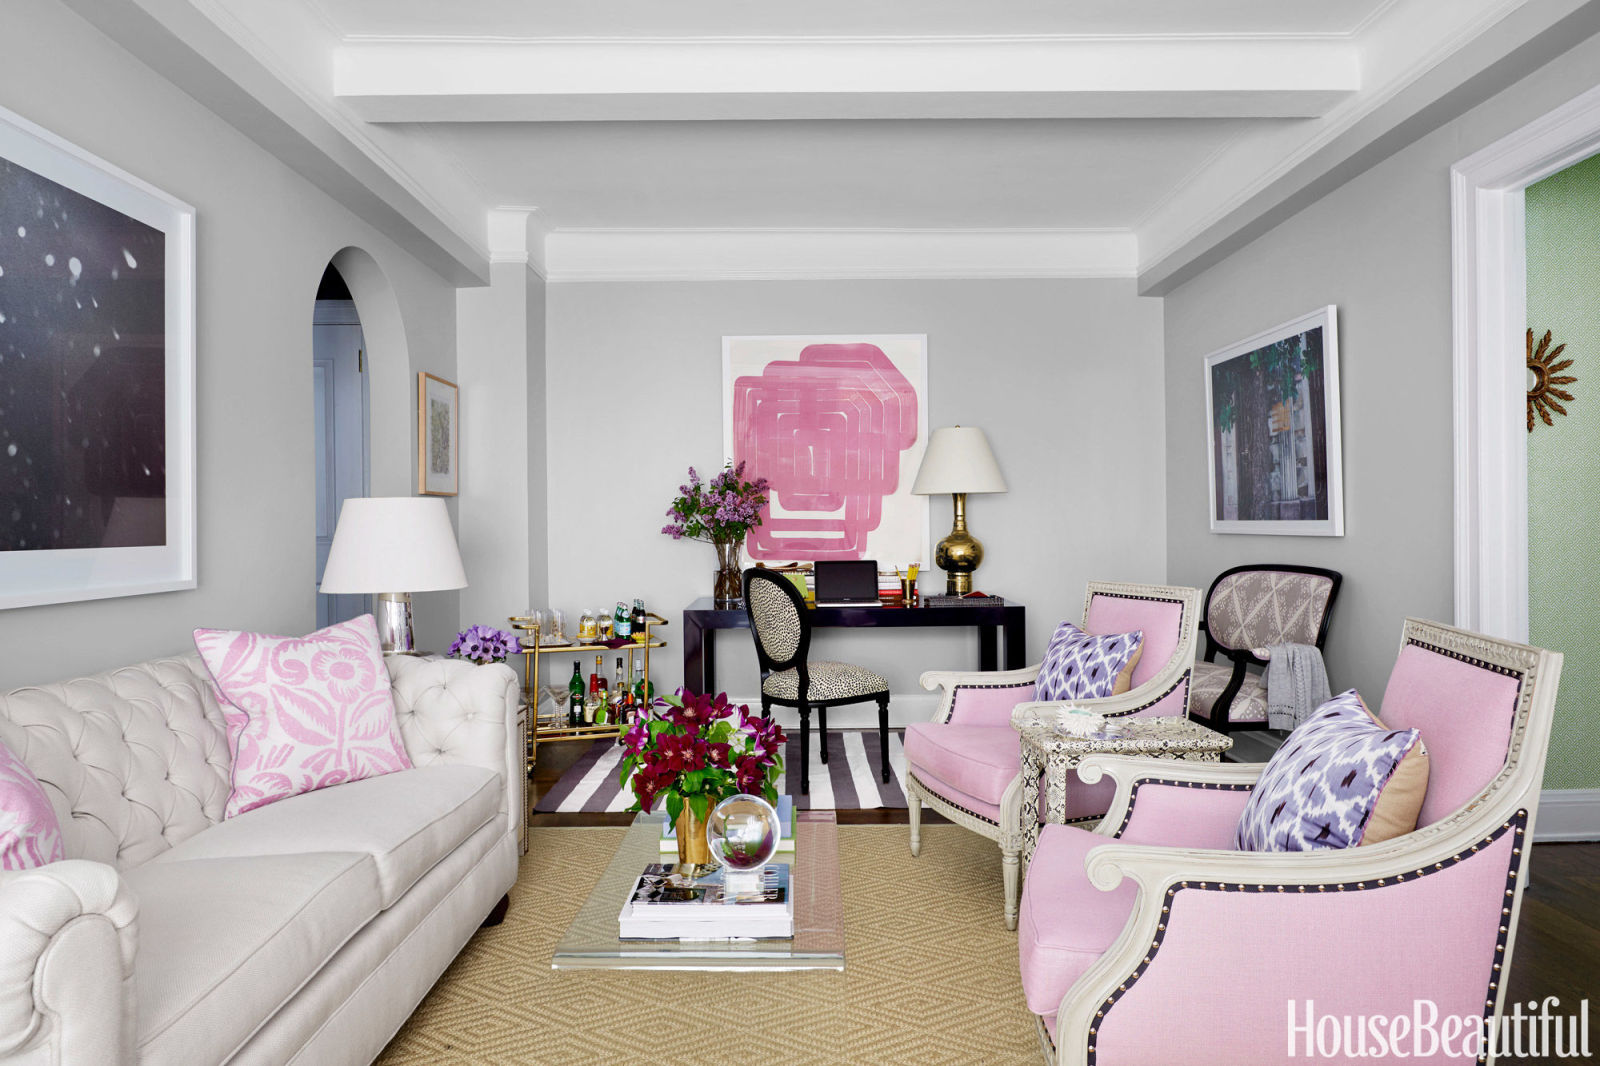 How To Decorate A Studio Apartment Small Space Decorating Ideas